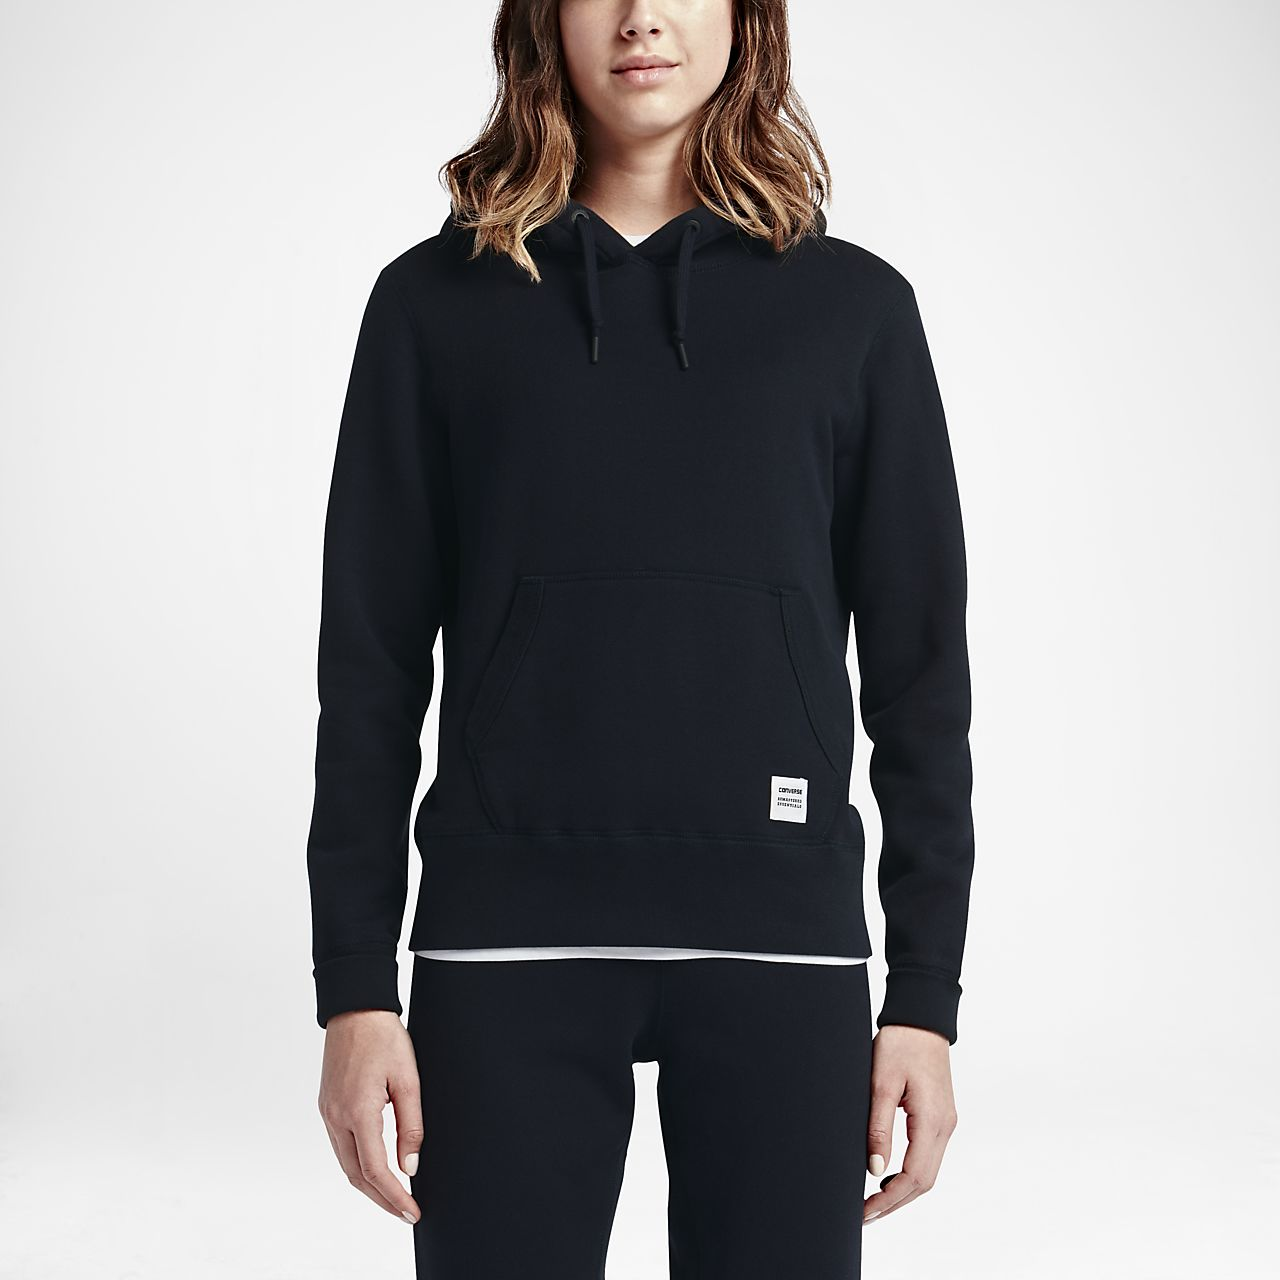 Converse Essentials Sportswear Crew Women's Sweatshirt Black